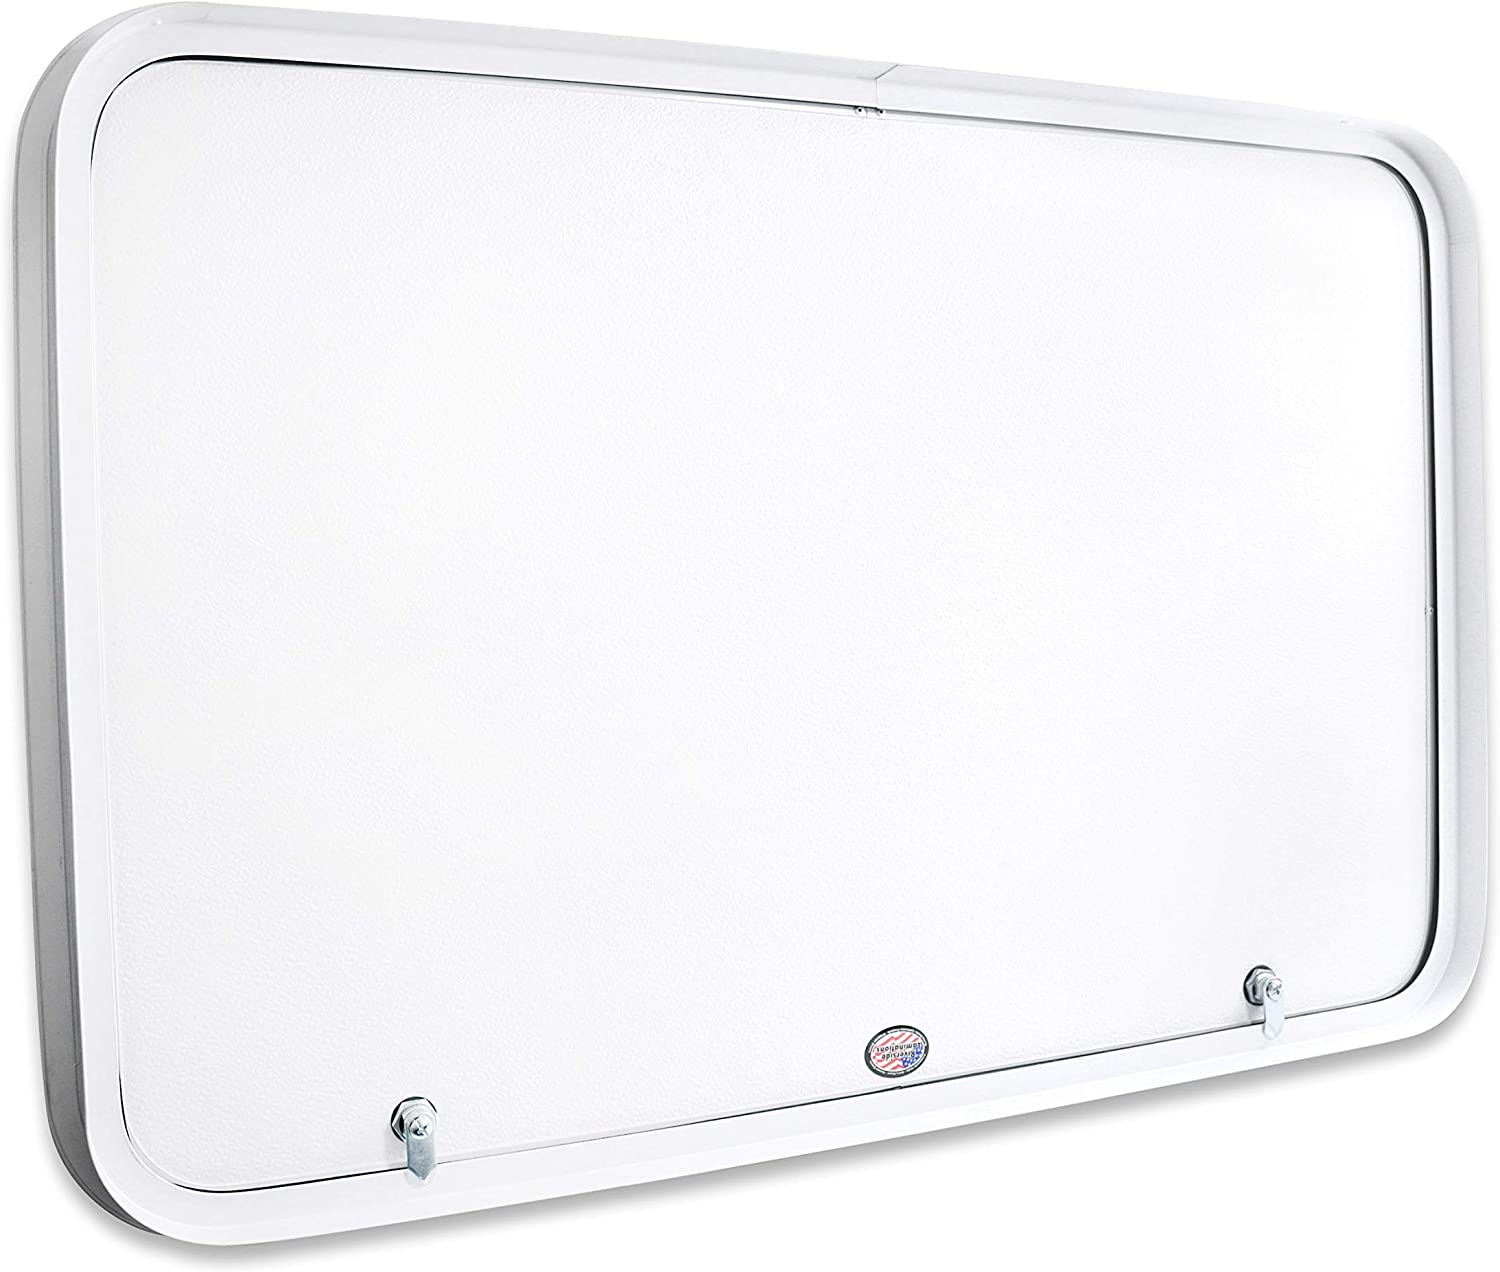 Compartment Access Storage Doors with Top Hinge Leisure Coachworks RV Baggage Door 36 Wide X 24 High with Rounded Corners and Thumblocks for RVs Camper Trailer Motor Home